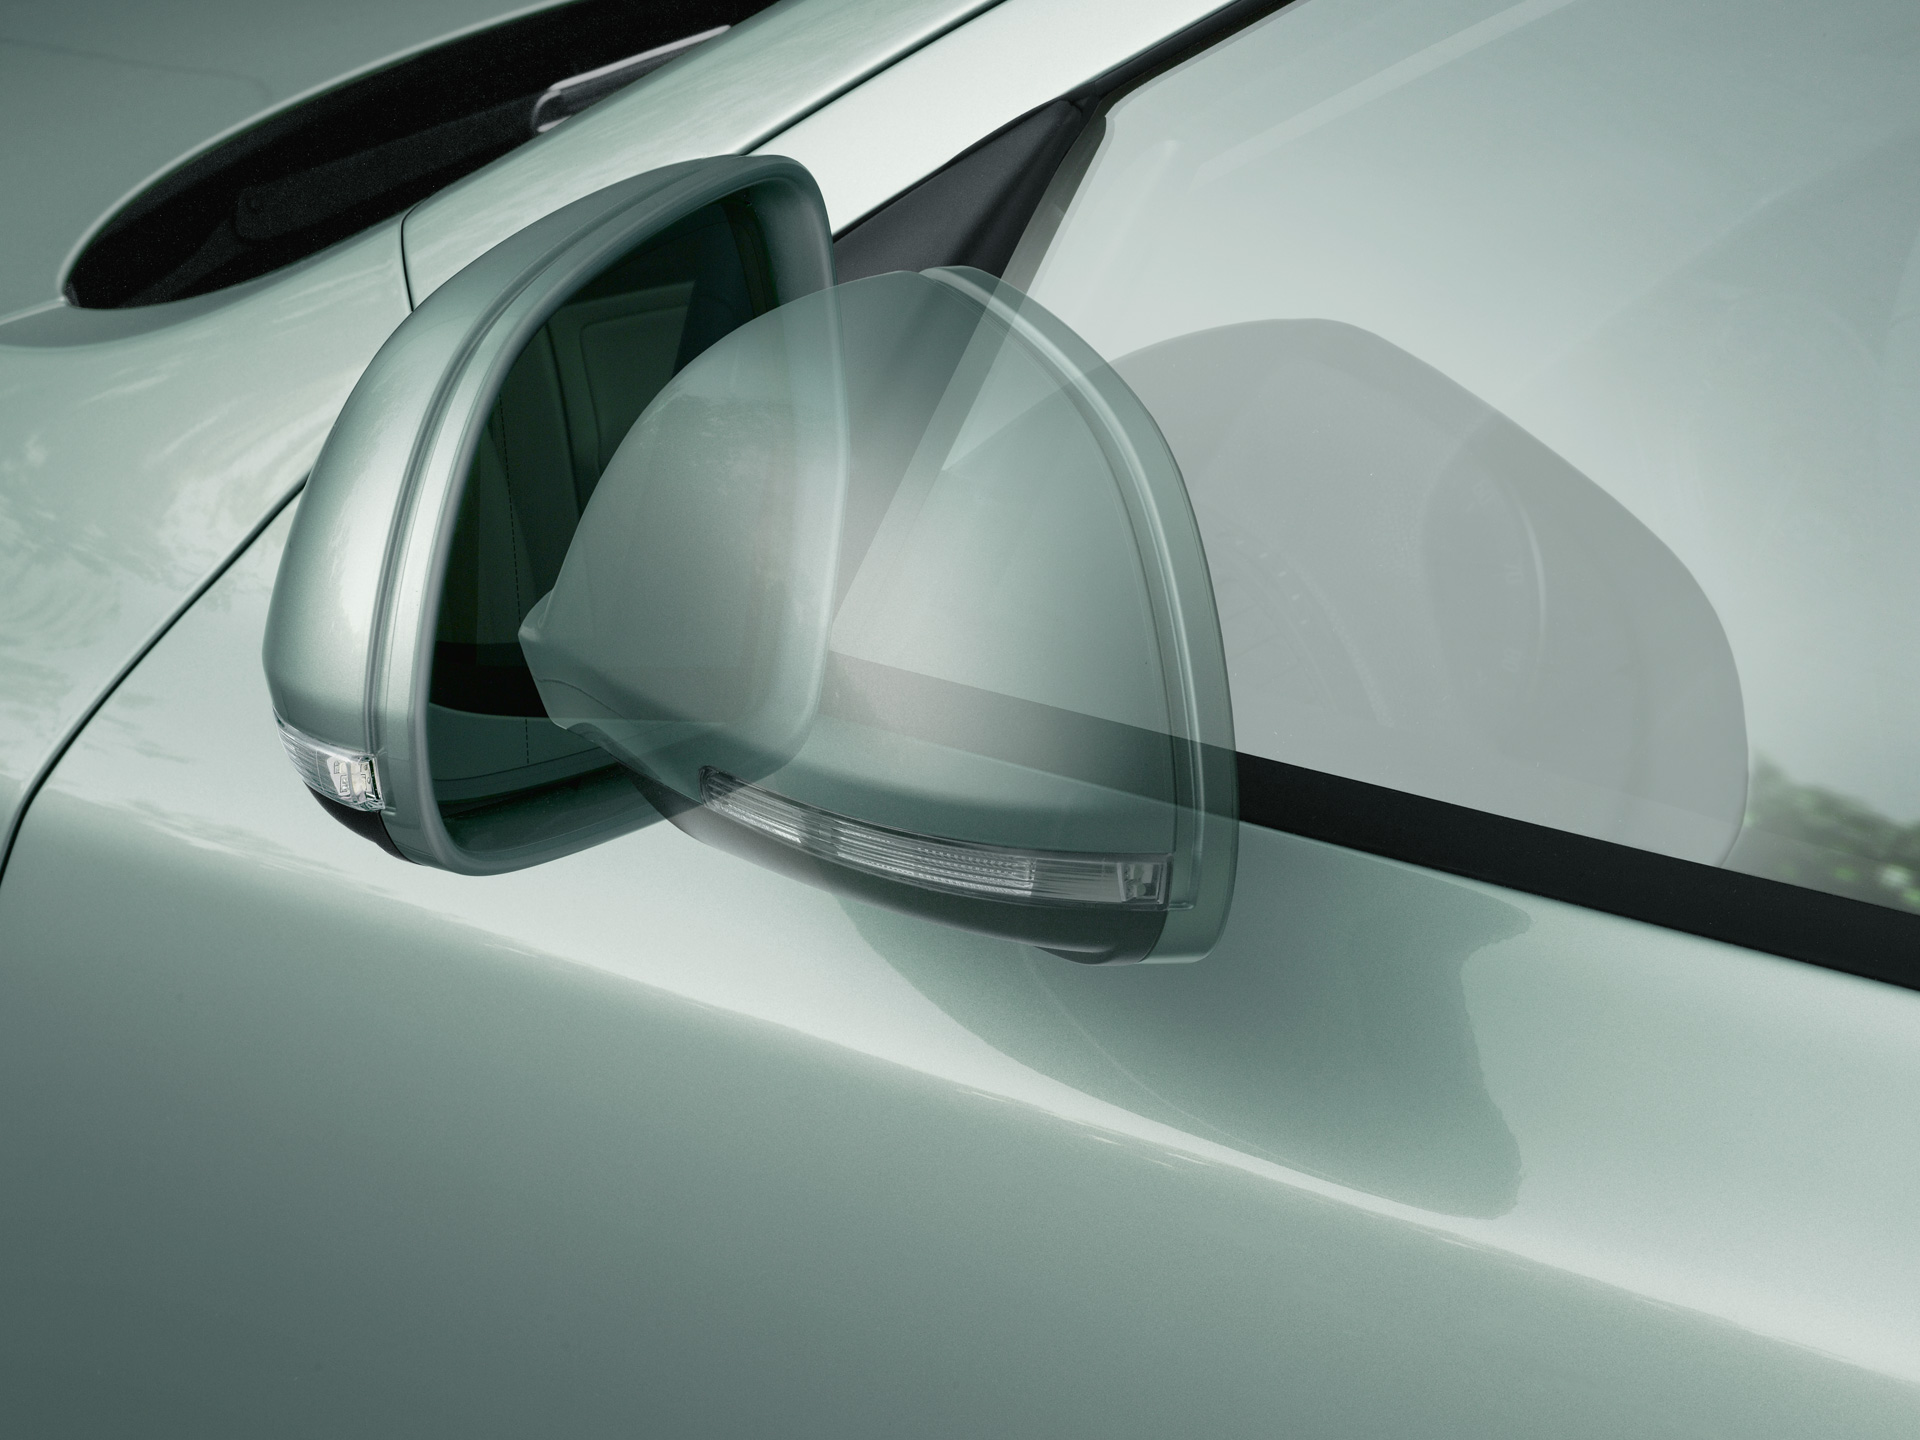 Automatically retractable external rearview mirrors with boarding spots designed to illuminate the entry area of the ŠKODA Octavia